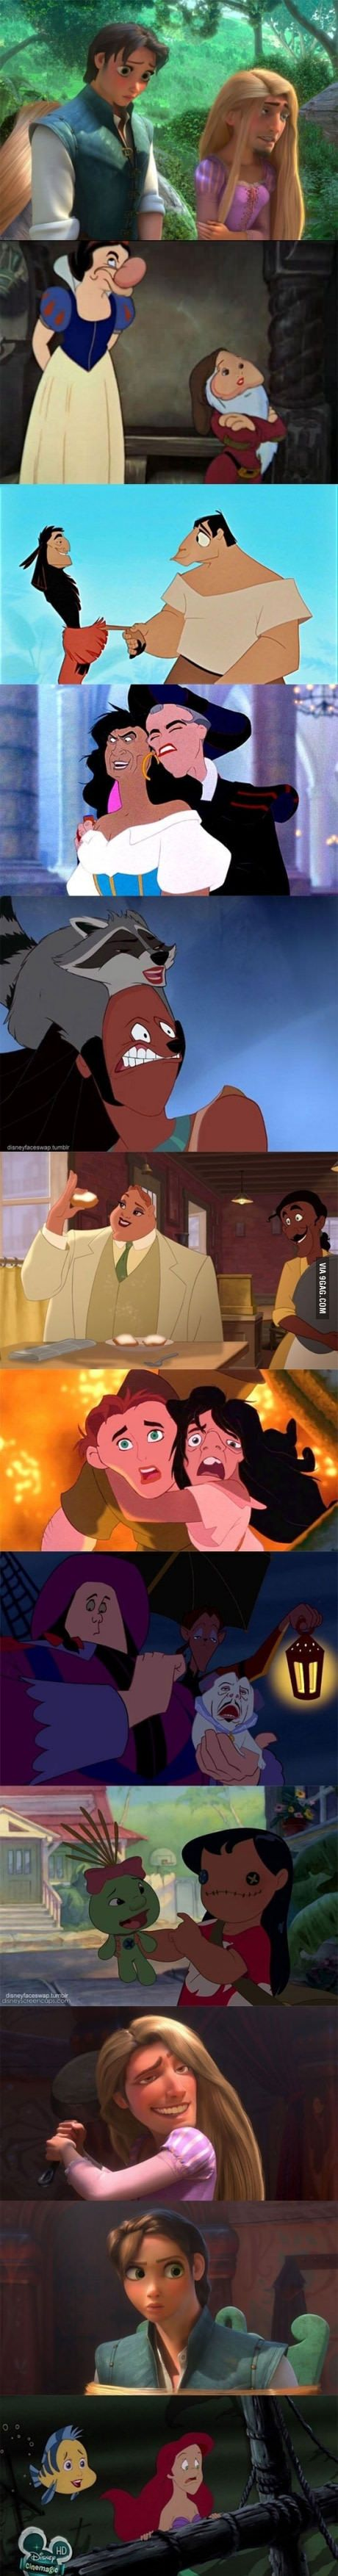 Disney faceswap